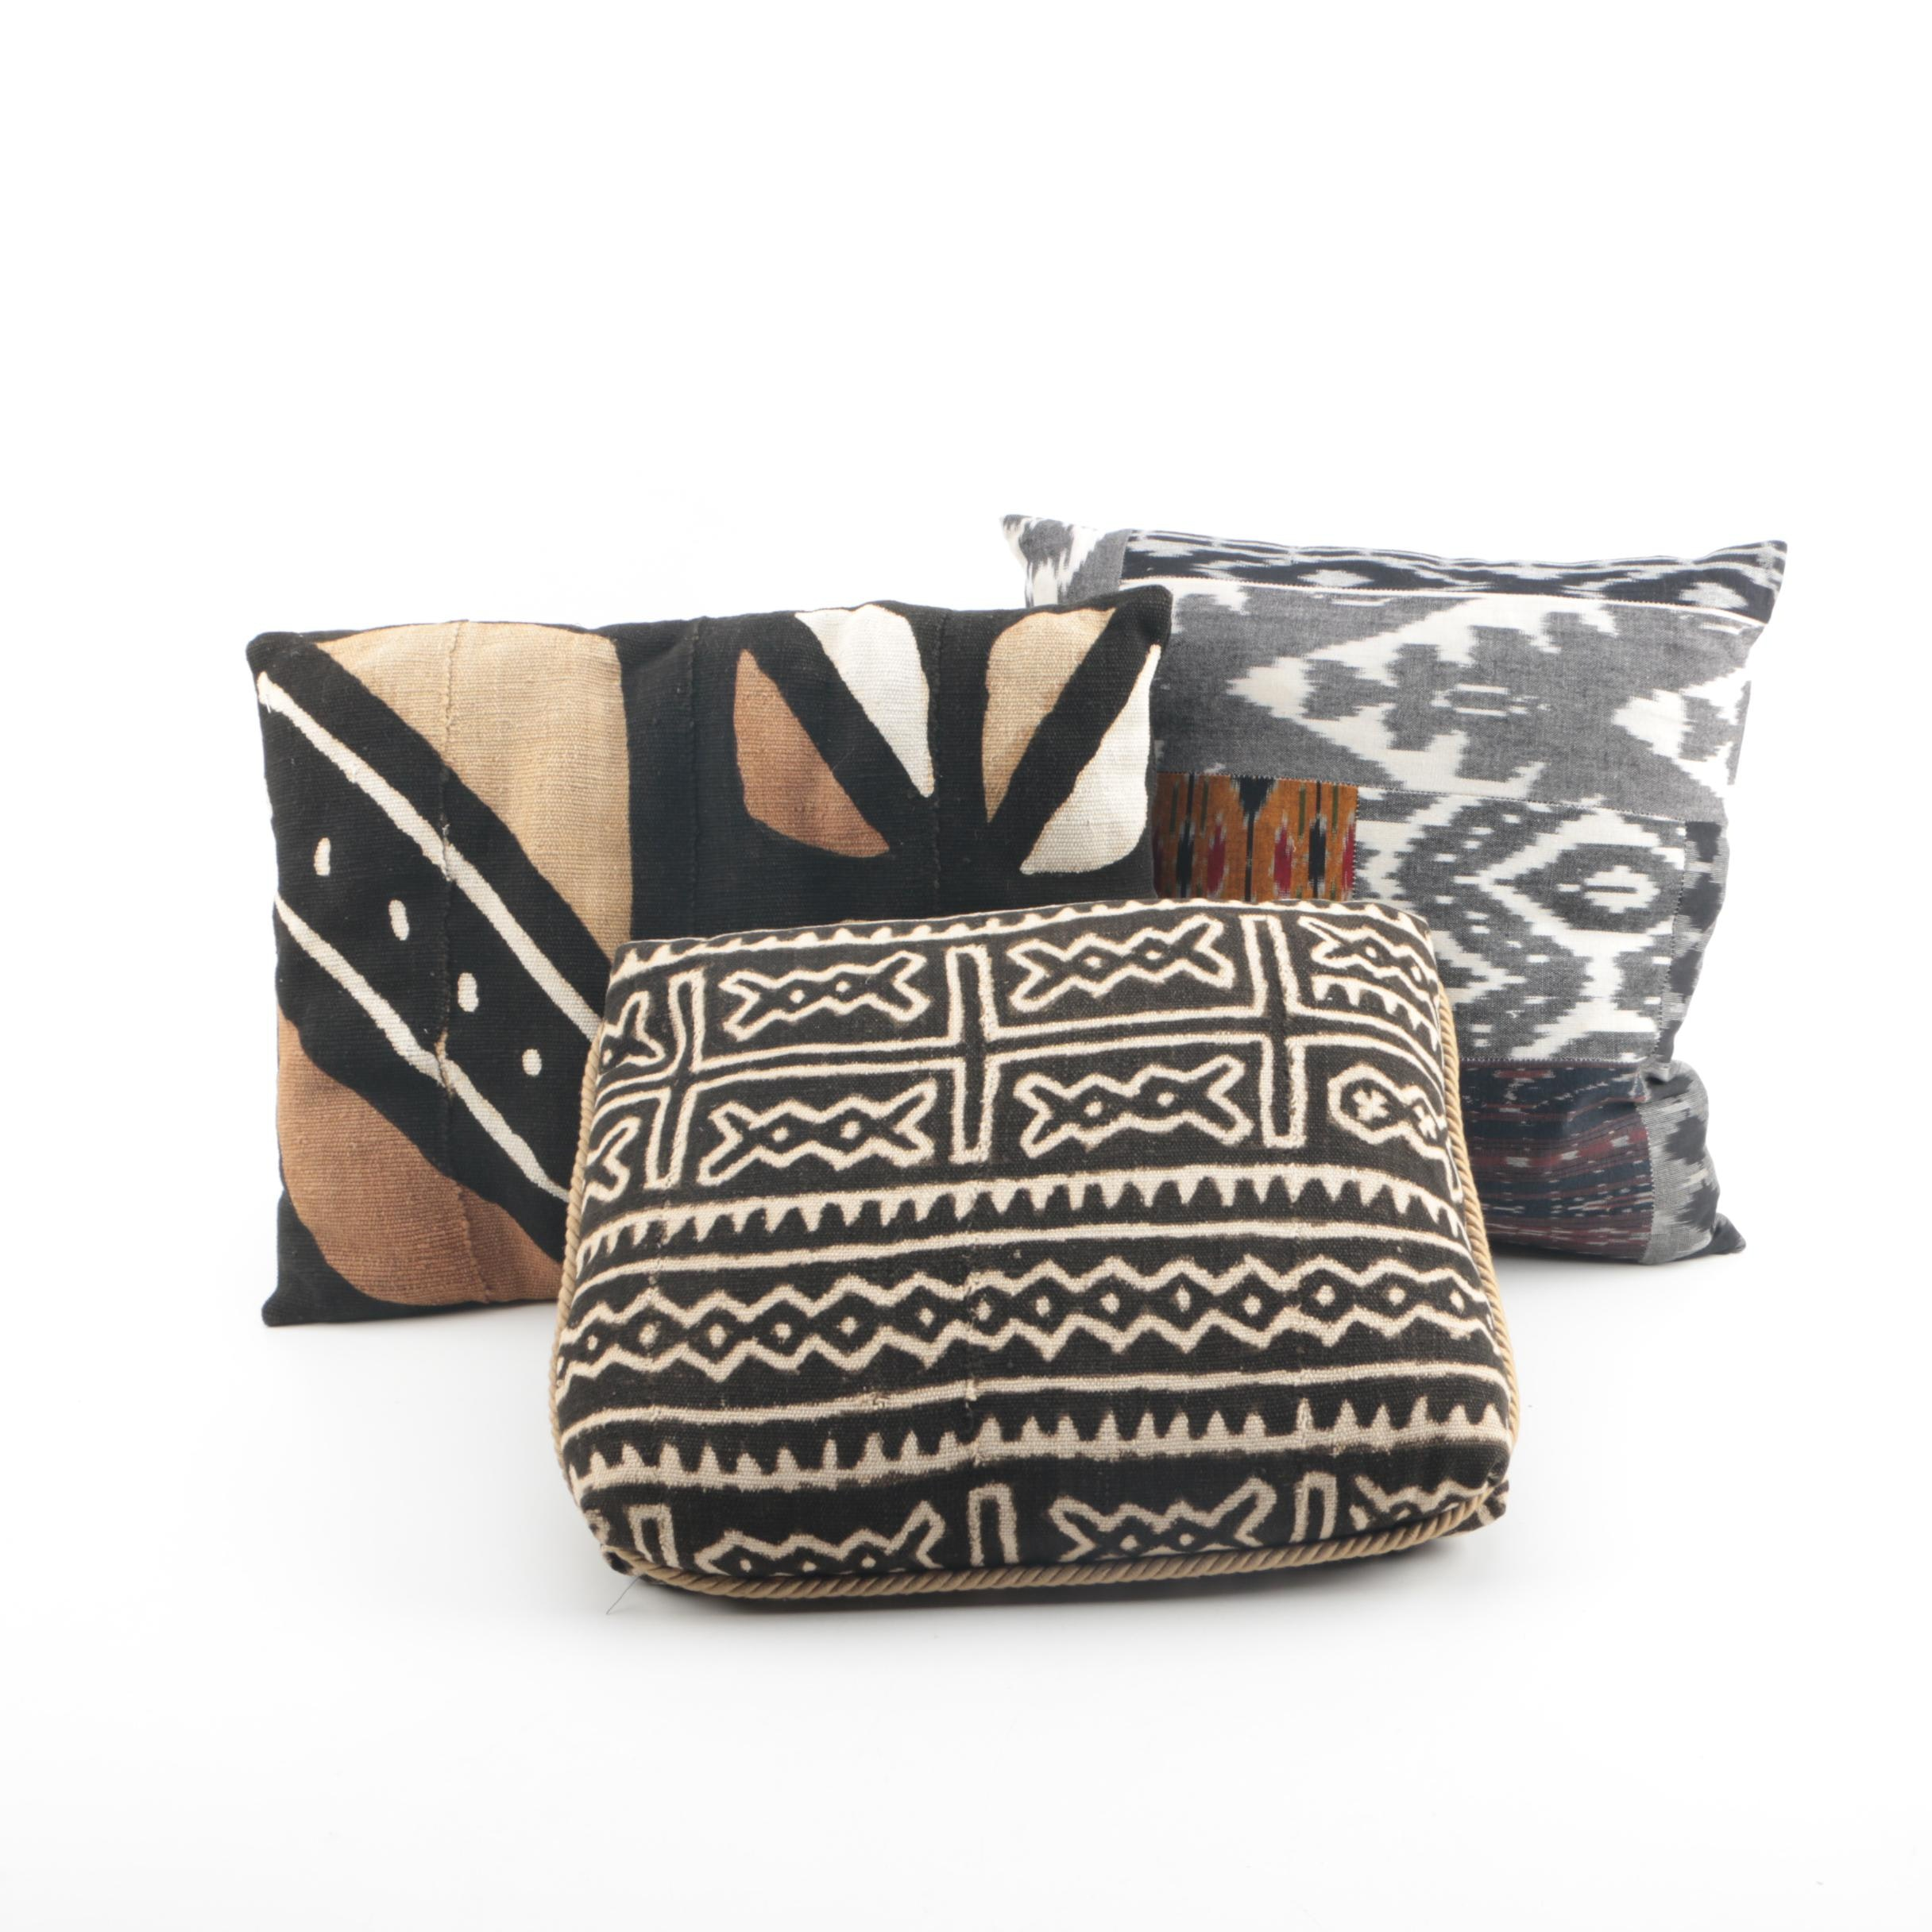 Woven Canvas and Cotton Accent Pillows including Aviva Stanoff